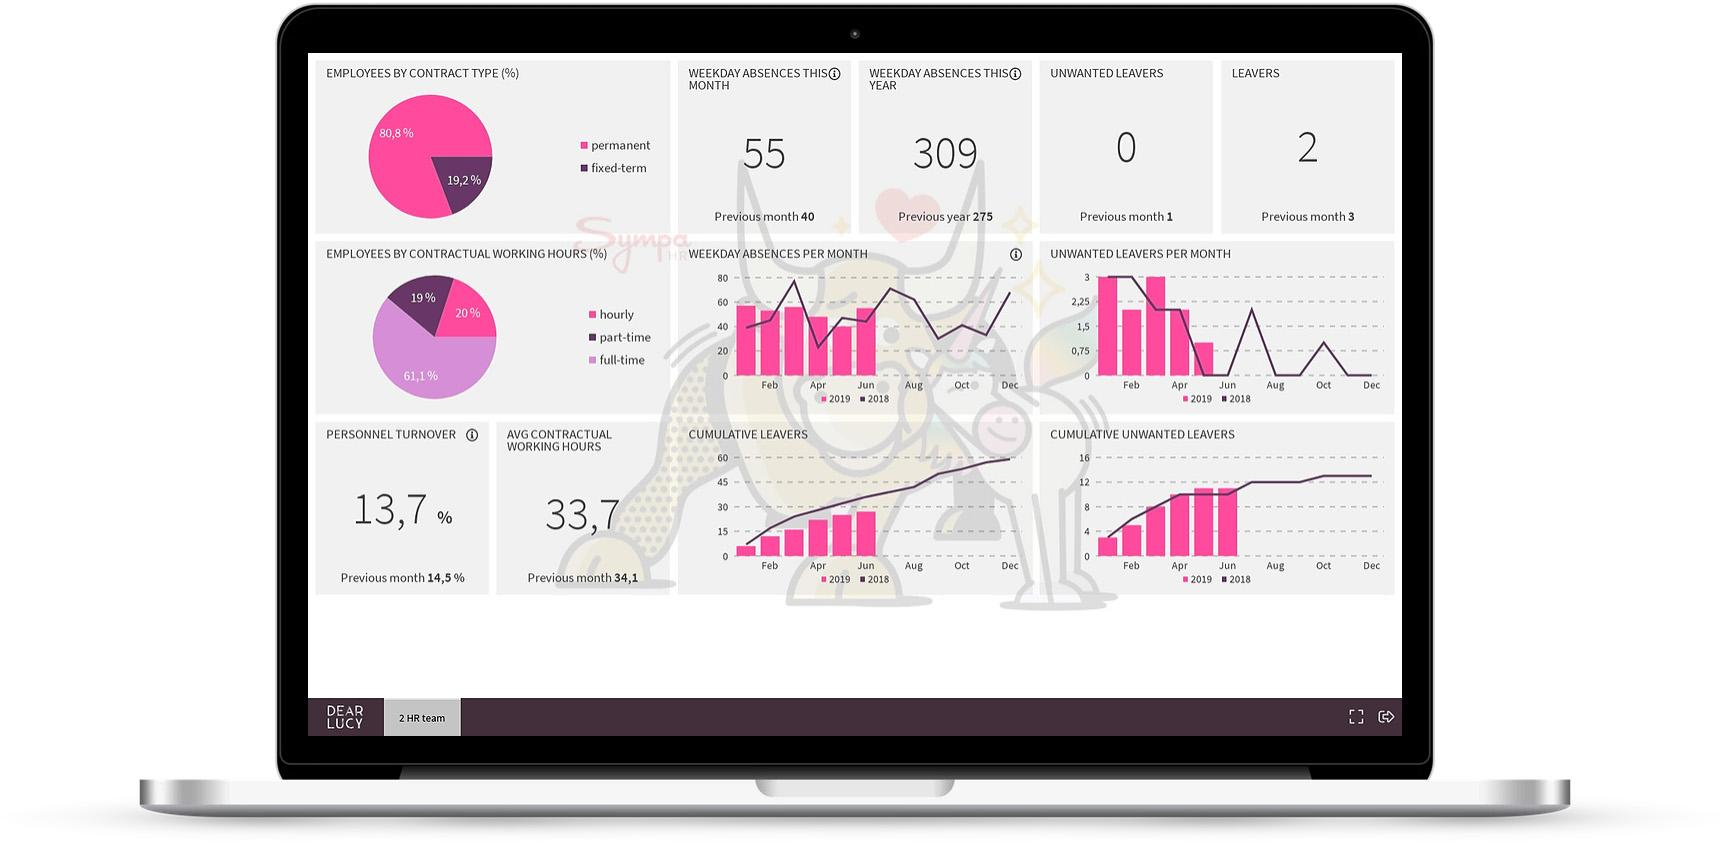 Sympa_HR_Dashboard_Team copy